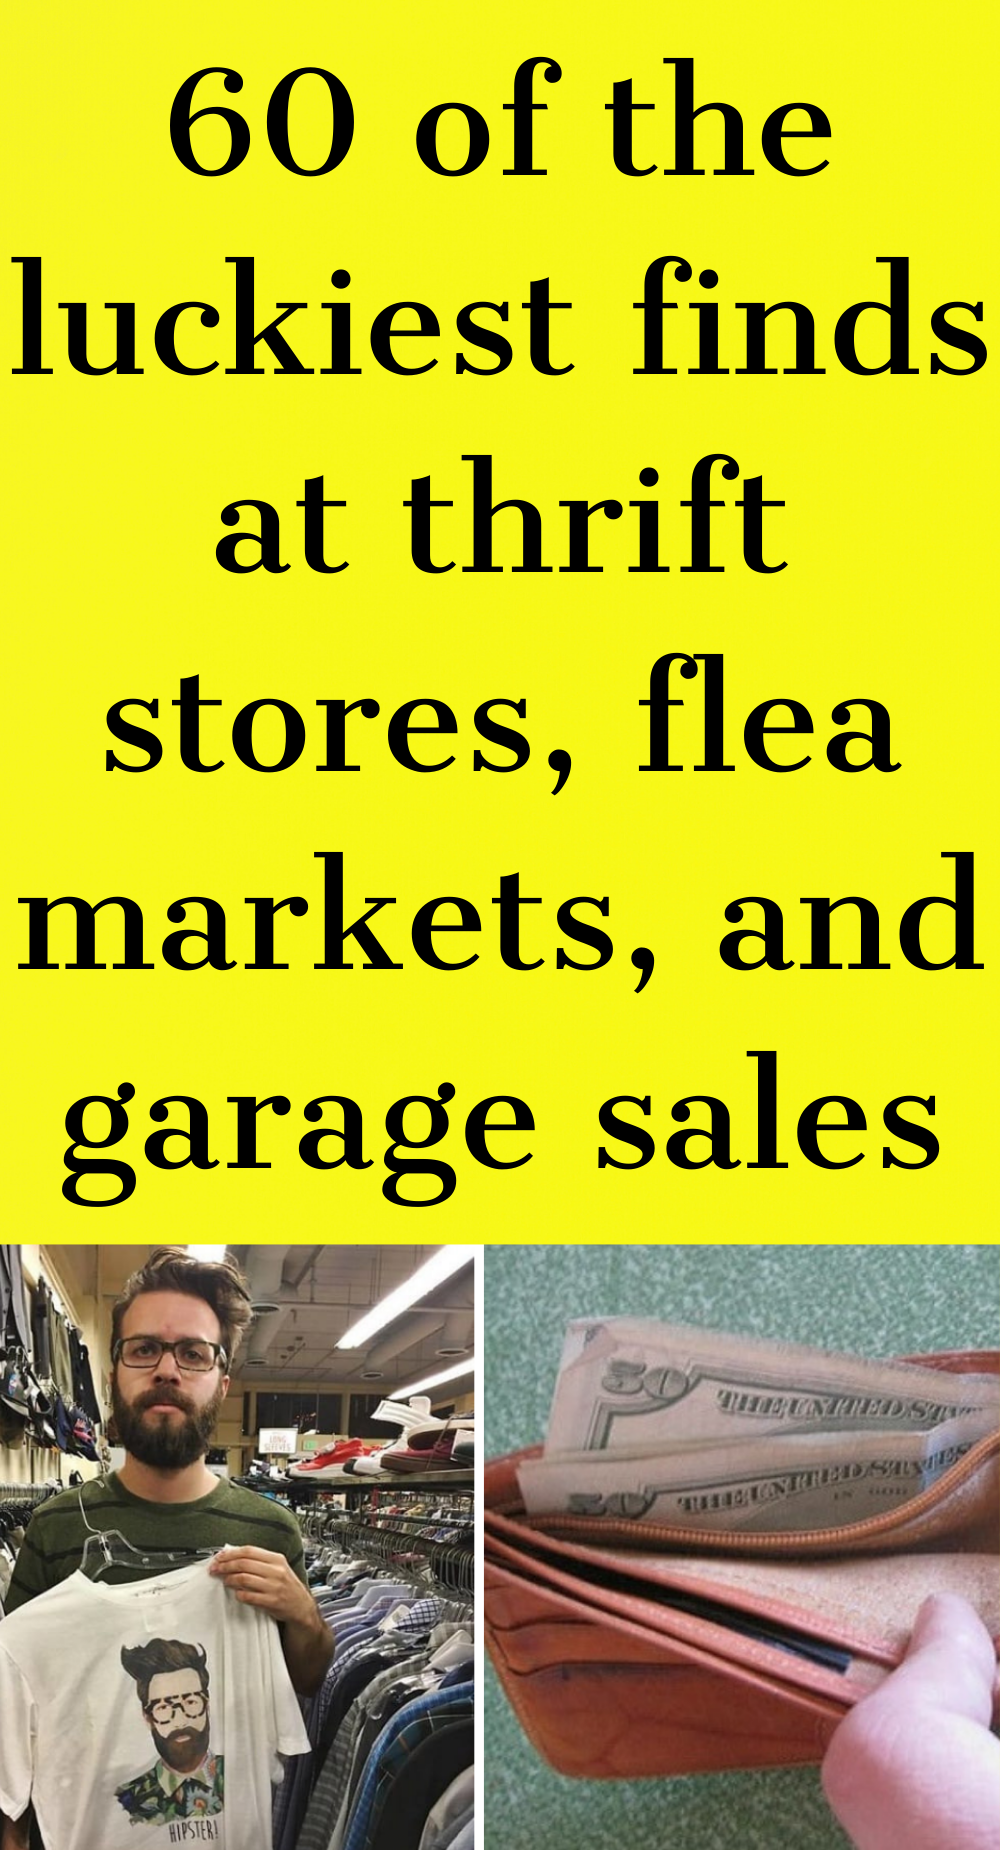 60 of the luckiest finds at thrift stores, flea markets, and garage sales